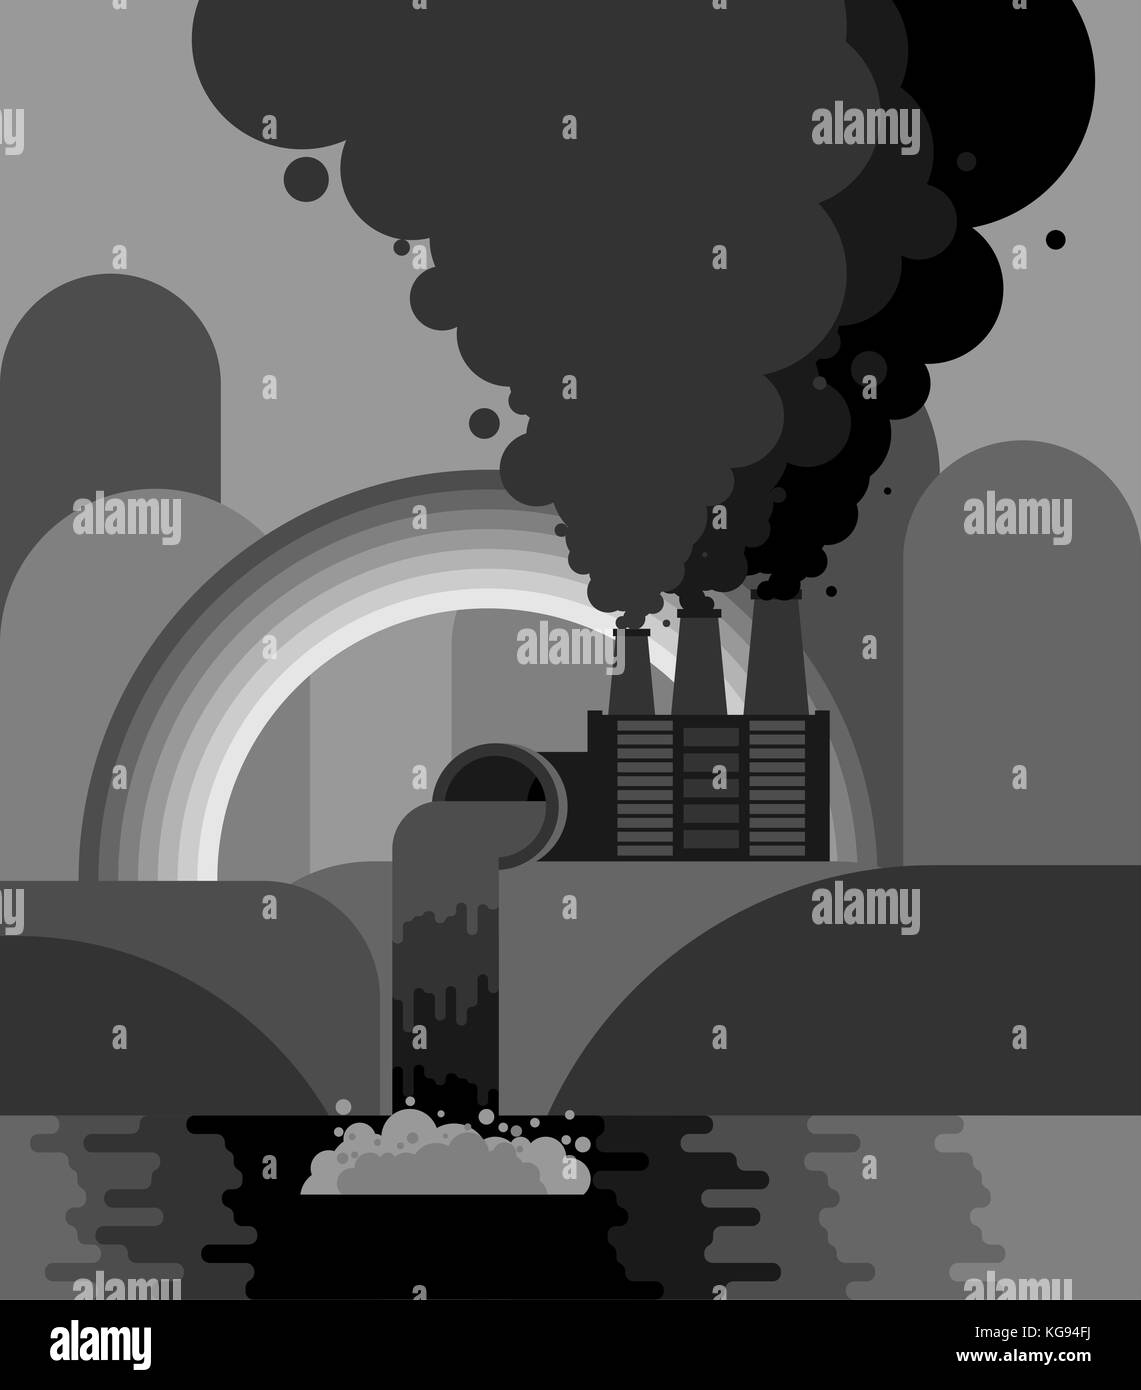 Industrial landscape. Plant emissions into river. Environmental pollution. Black smoke from pipes of factory. Gray - Stock Vector